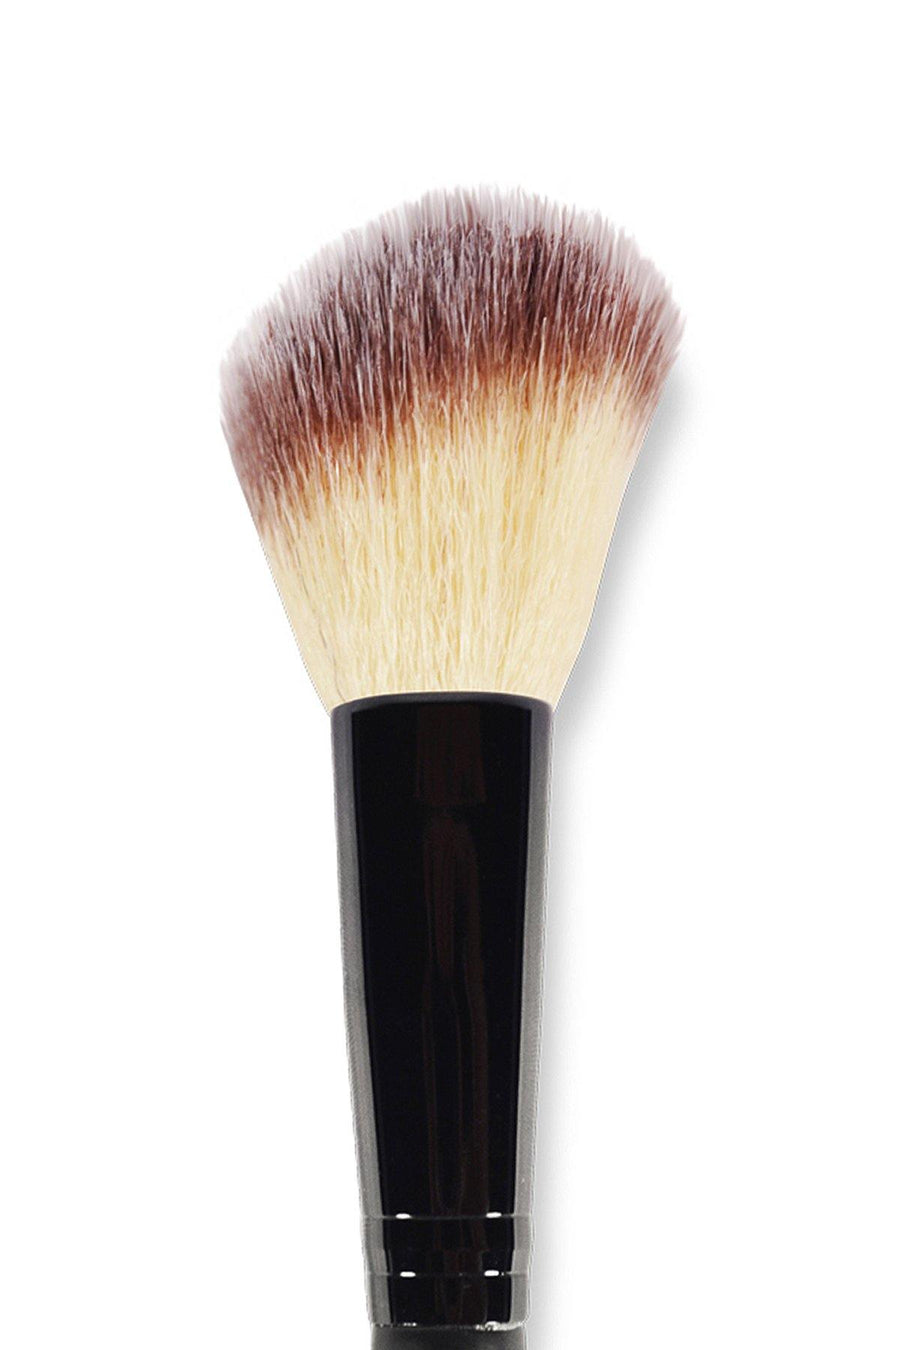 Blush Brush - Natural Brown - Blend Mineral Cosmetics